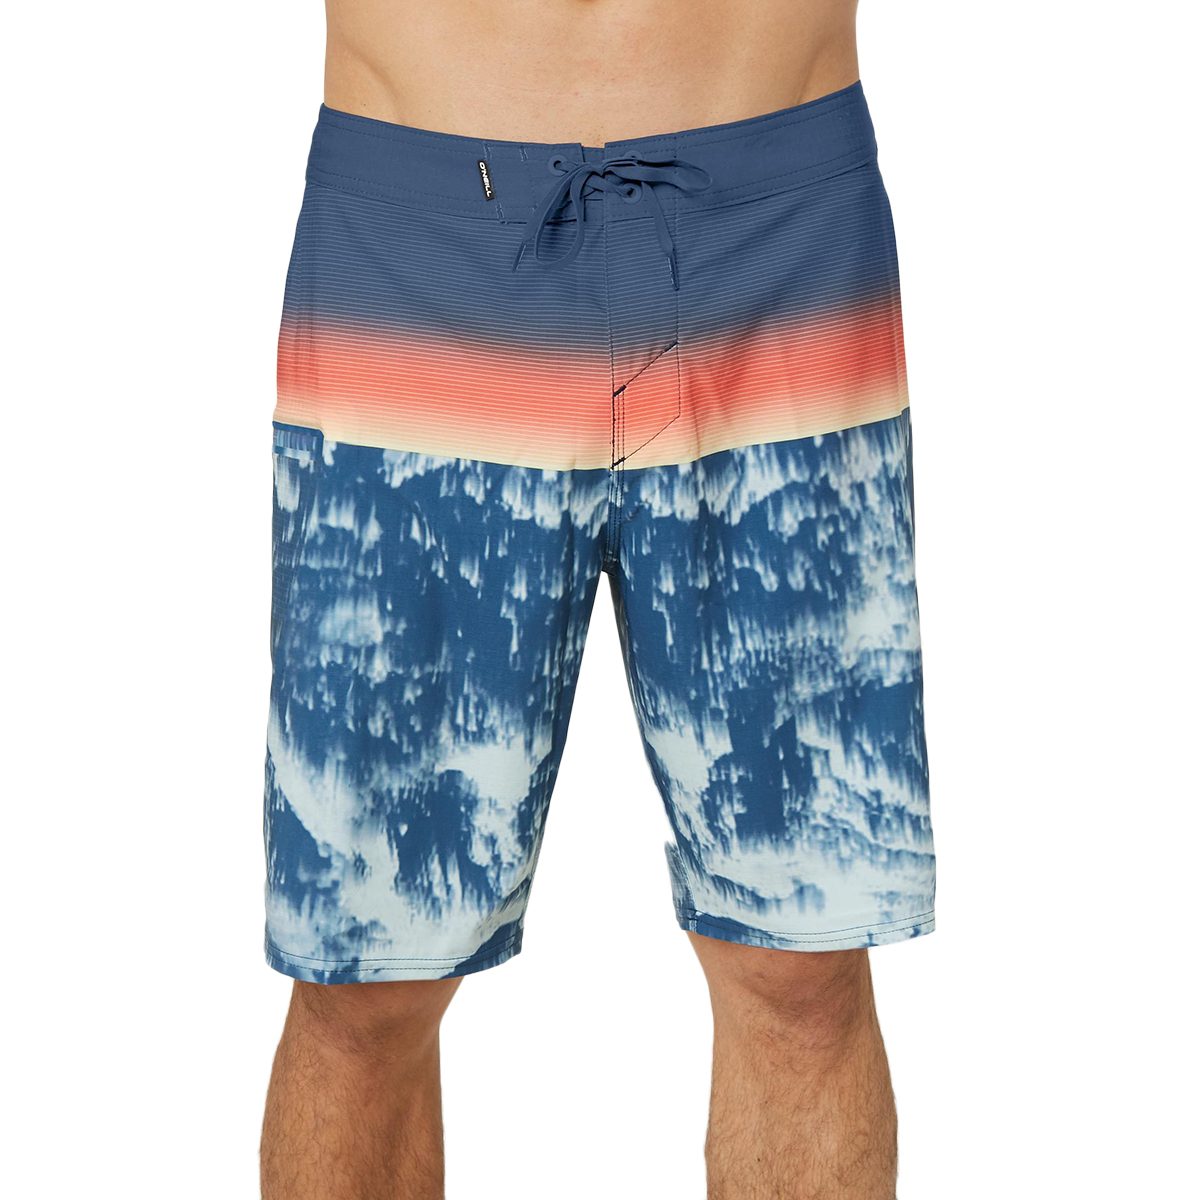 O'neill Young Men's Hyperfreak Boardshort - Blue, 32